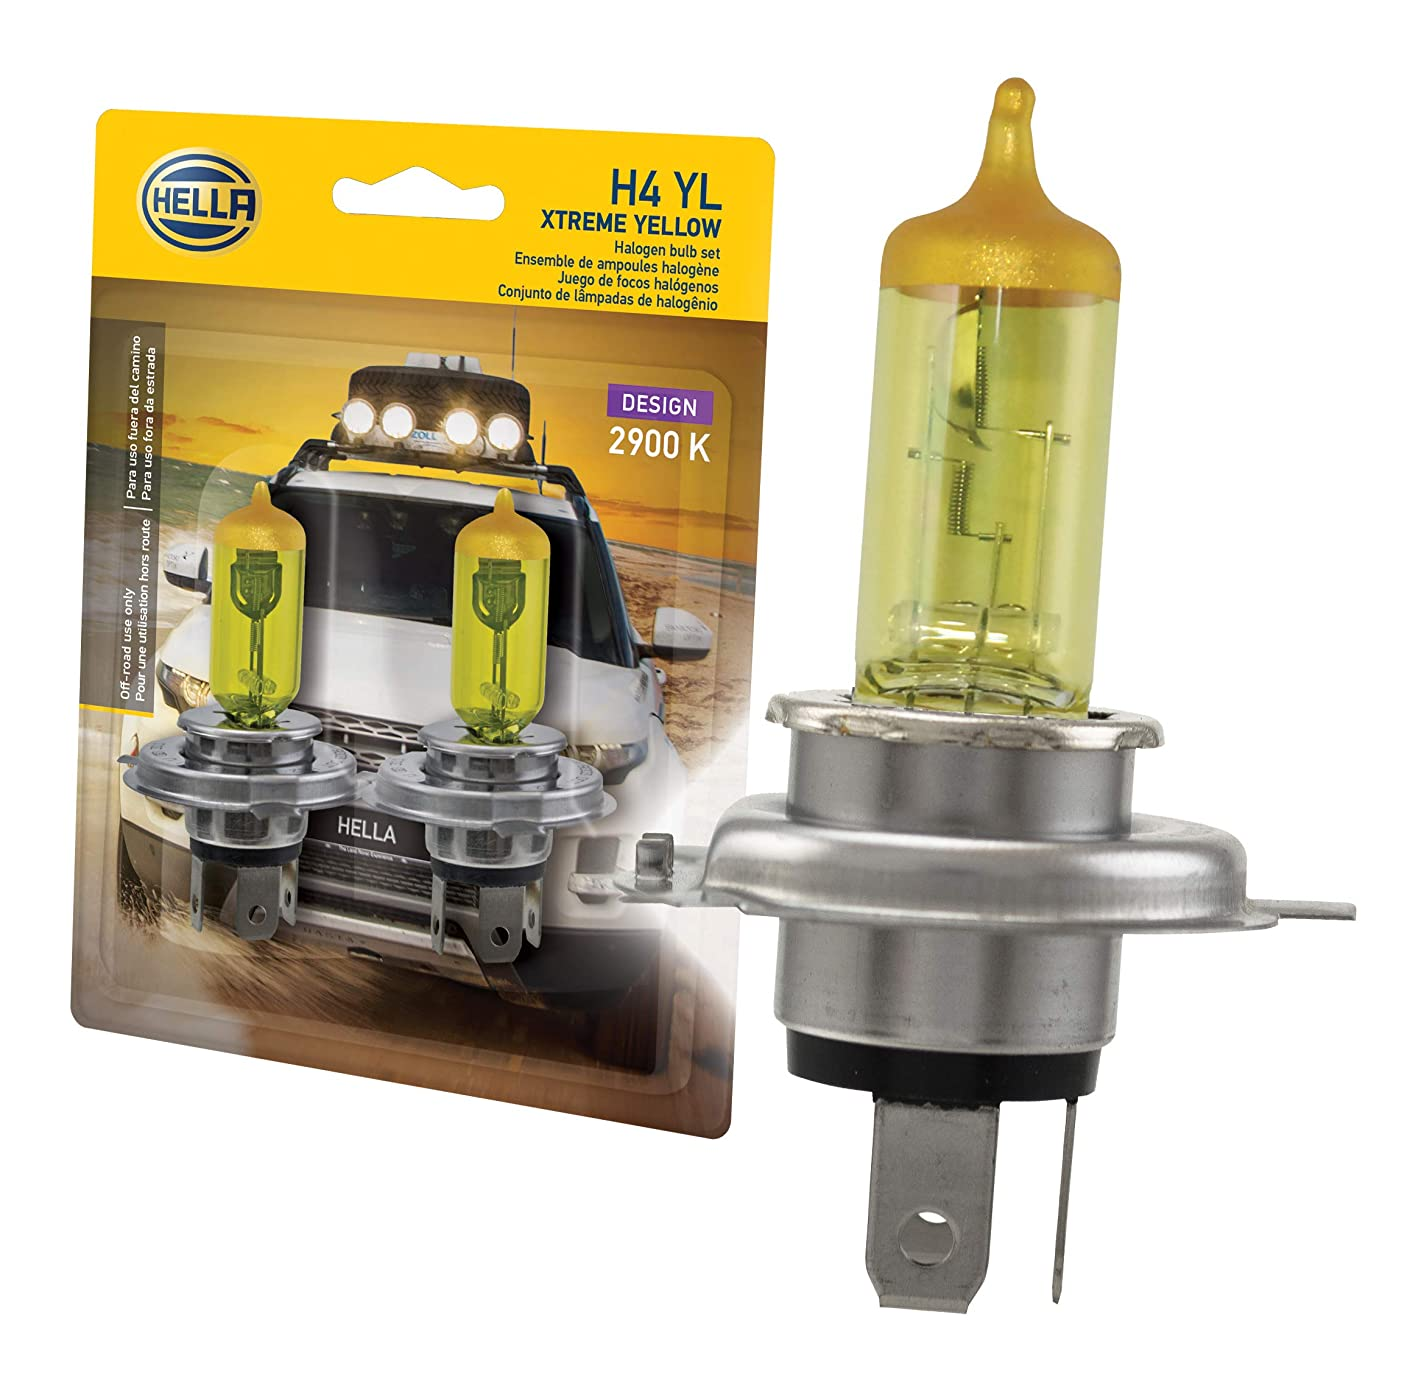 HELLA H4 Yellow-60/55W YL Xtreme Yellow Bulbs, 12V, 60/55W, 2 Pack